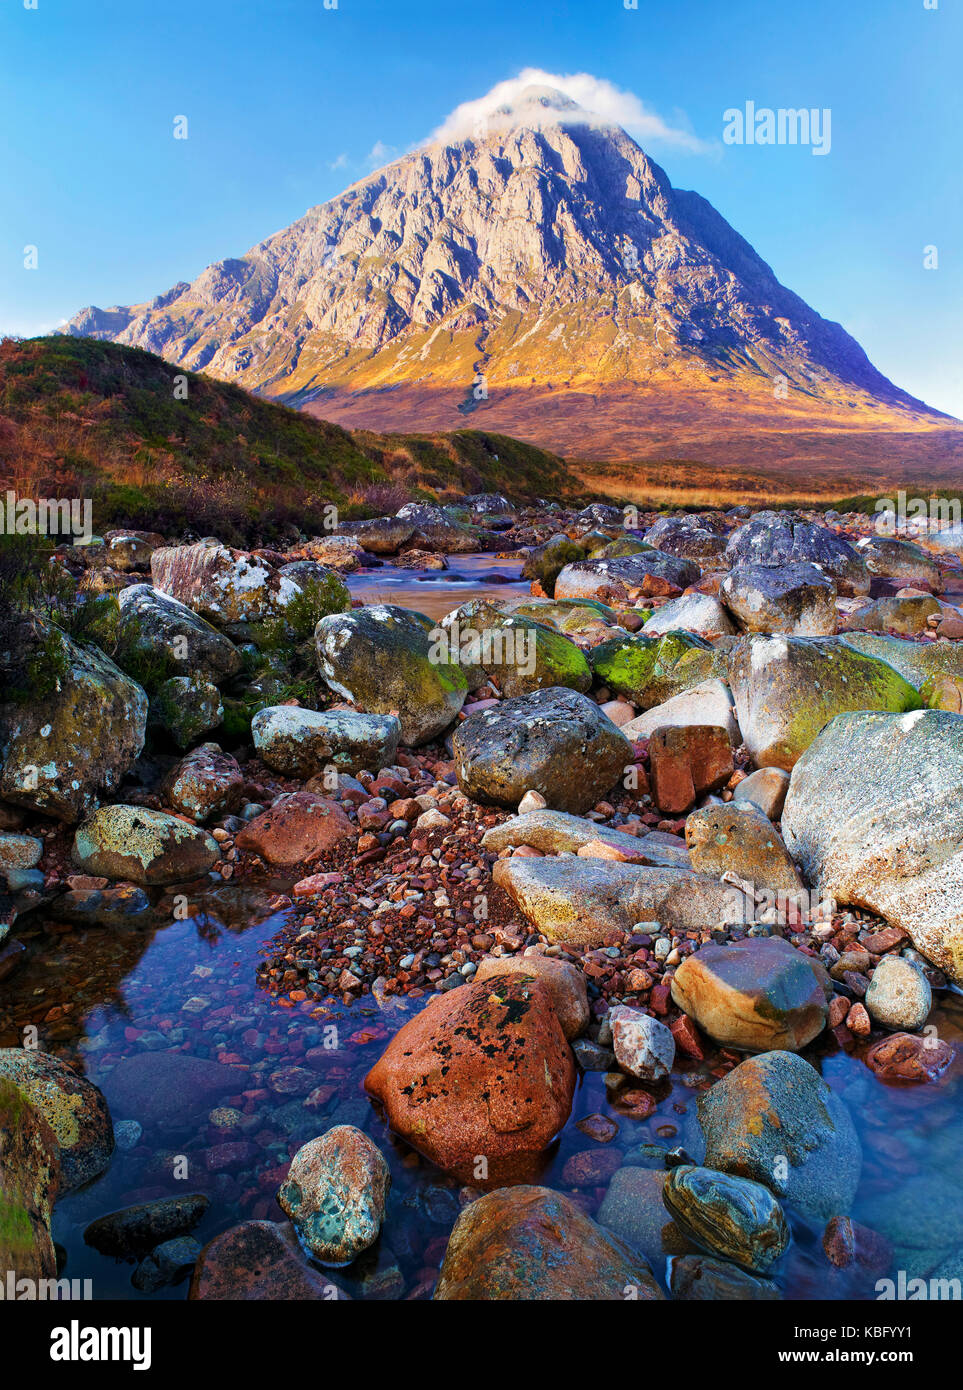 A sunny view of the famous mountain Buachaille Etive Mor in Rannoch Moor in the Scottish Highlands - Stock Image